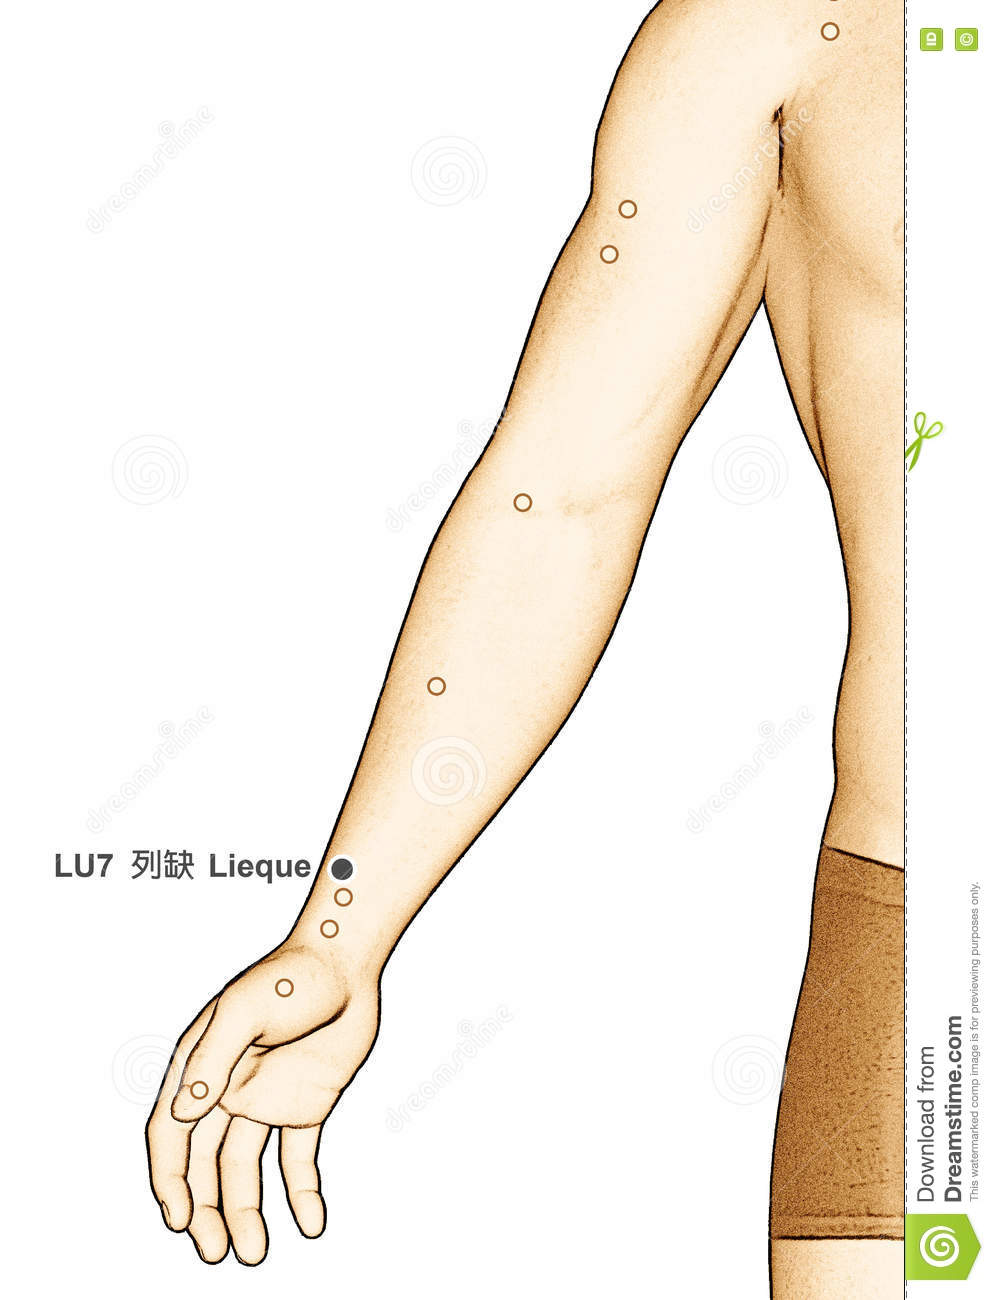 Drawing Acupuncture Point LU7 Lieque, 3D Illustration Stock